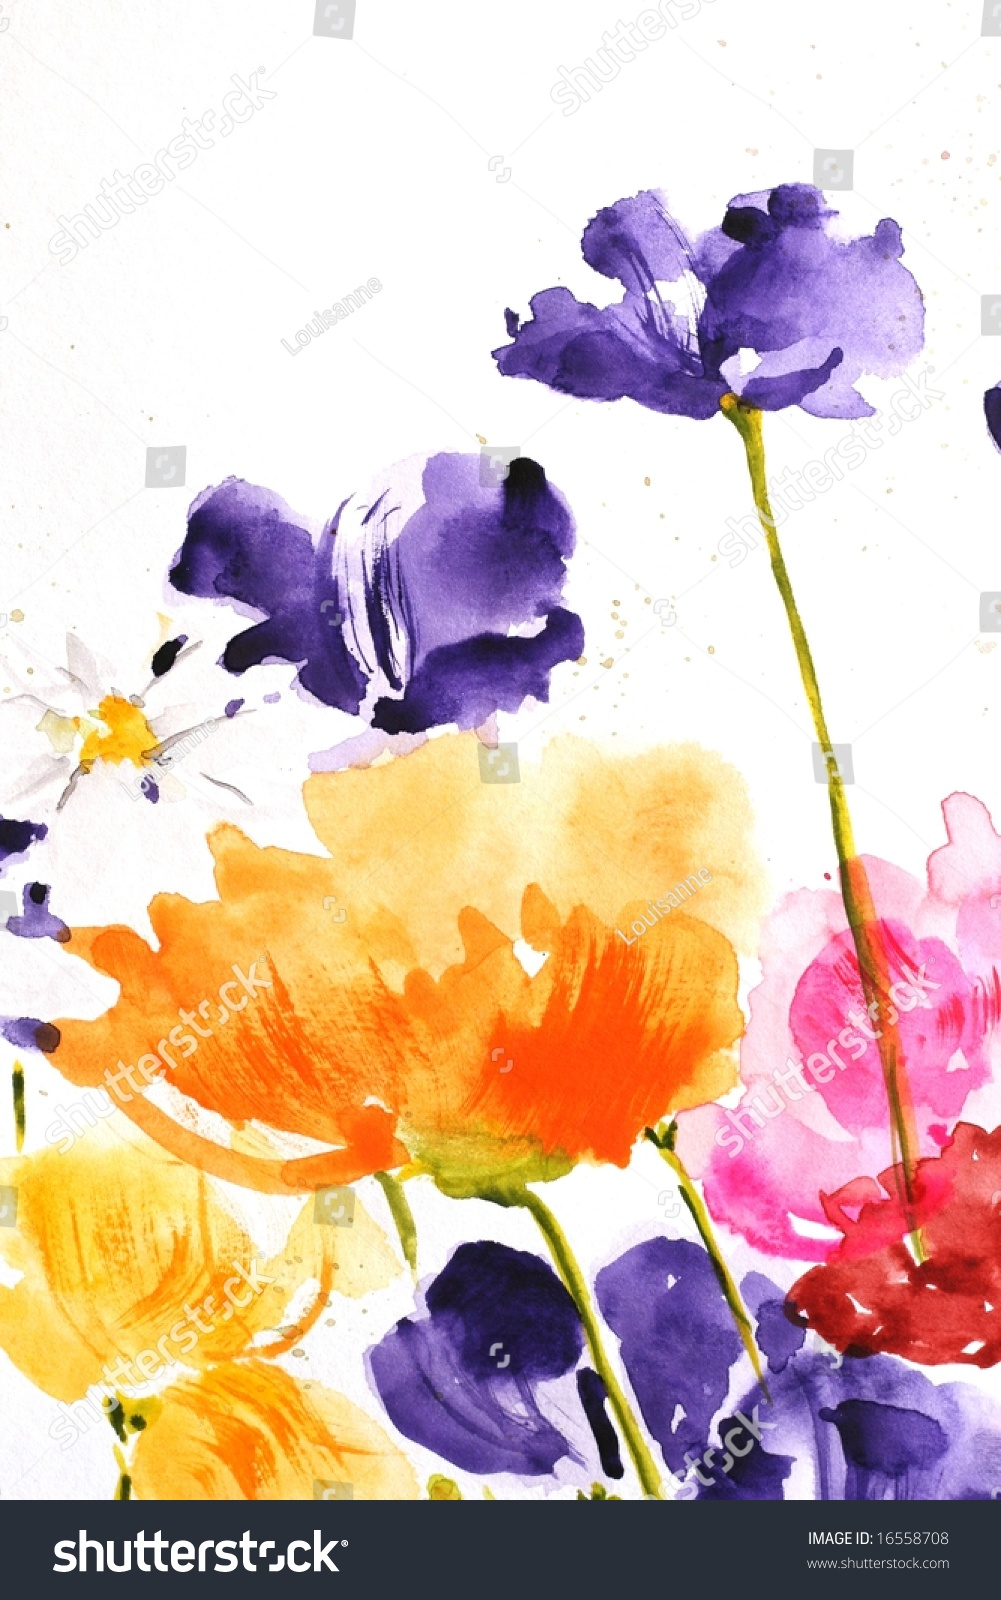 Floral summer design handpainted abstract flowers stock for Different painting designs